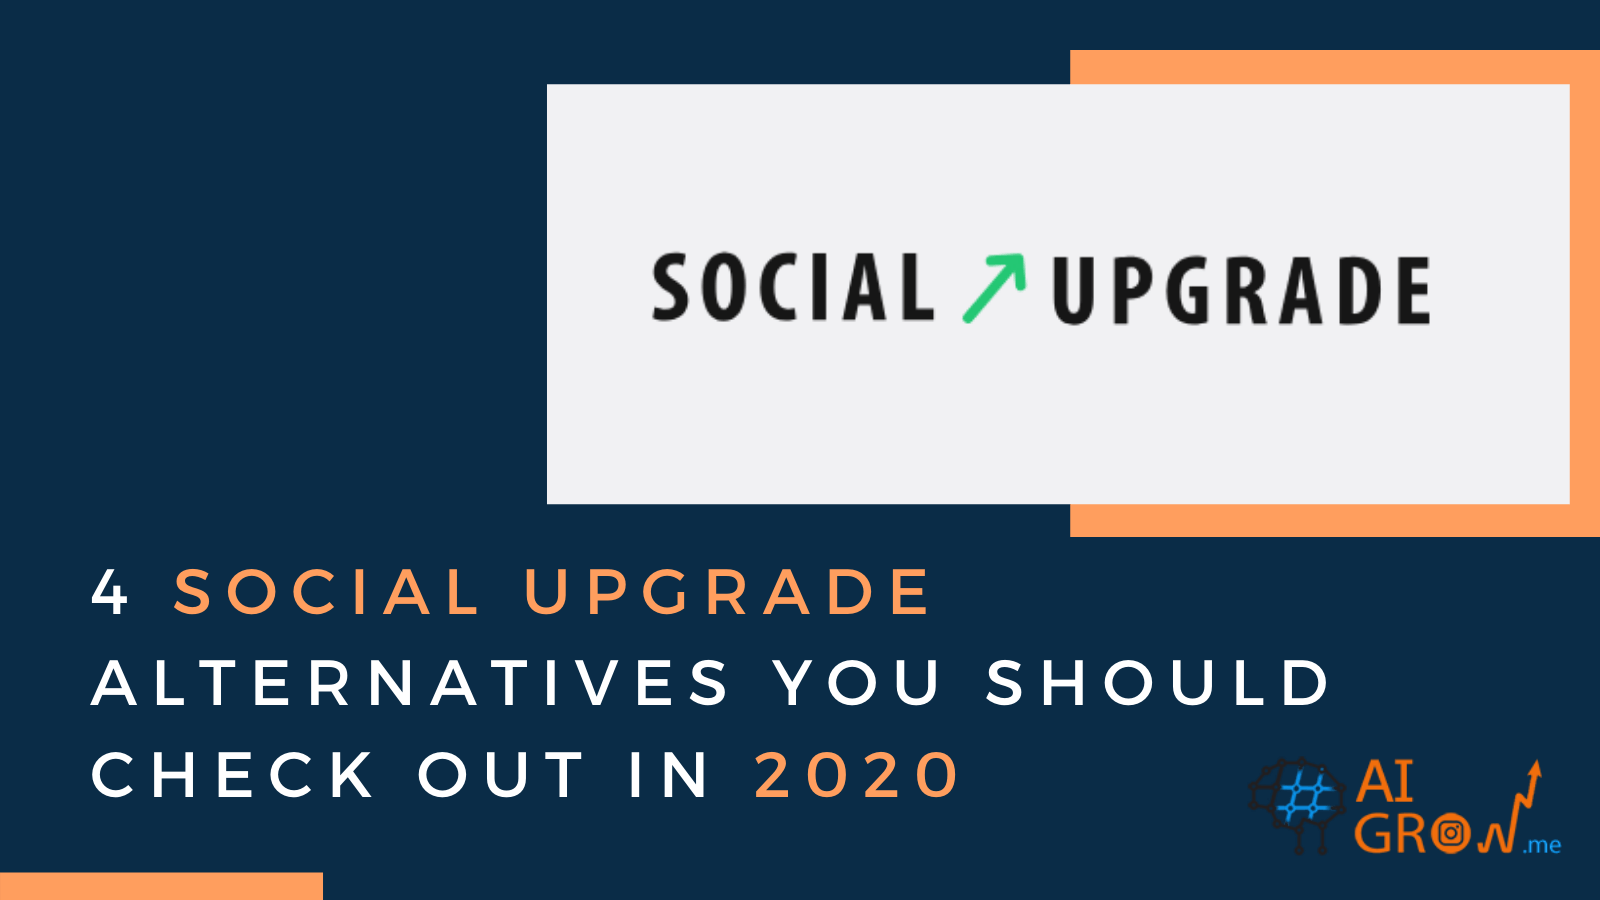 4 Social Upgrade Alternatives You Should Check Out in 2020